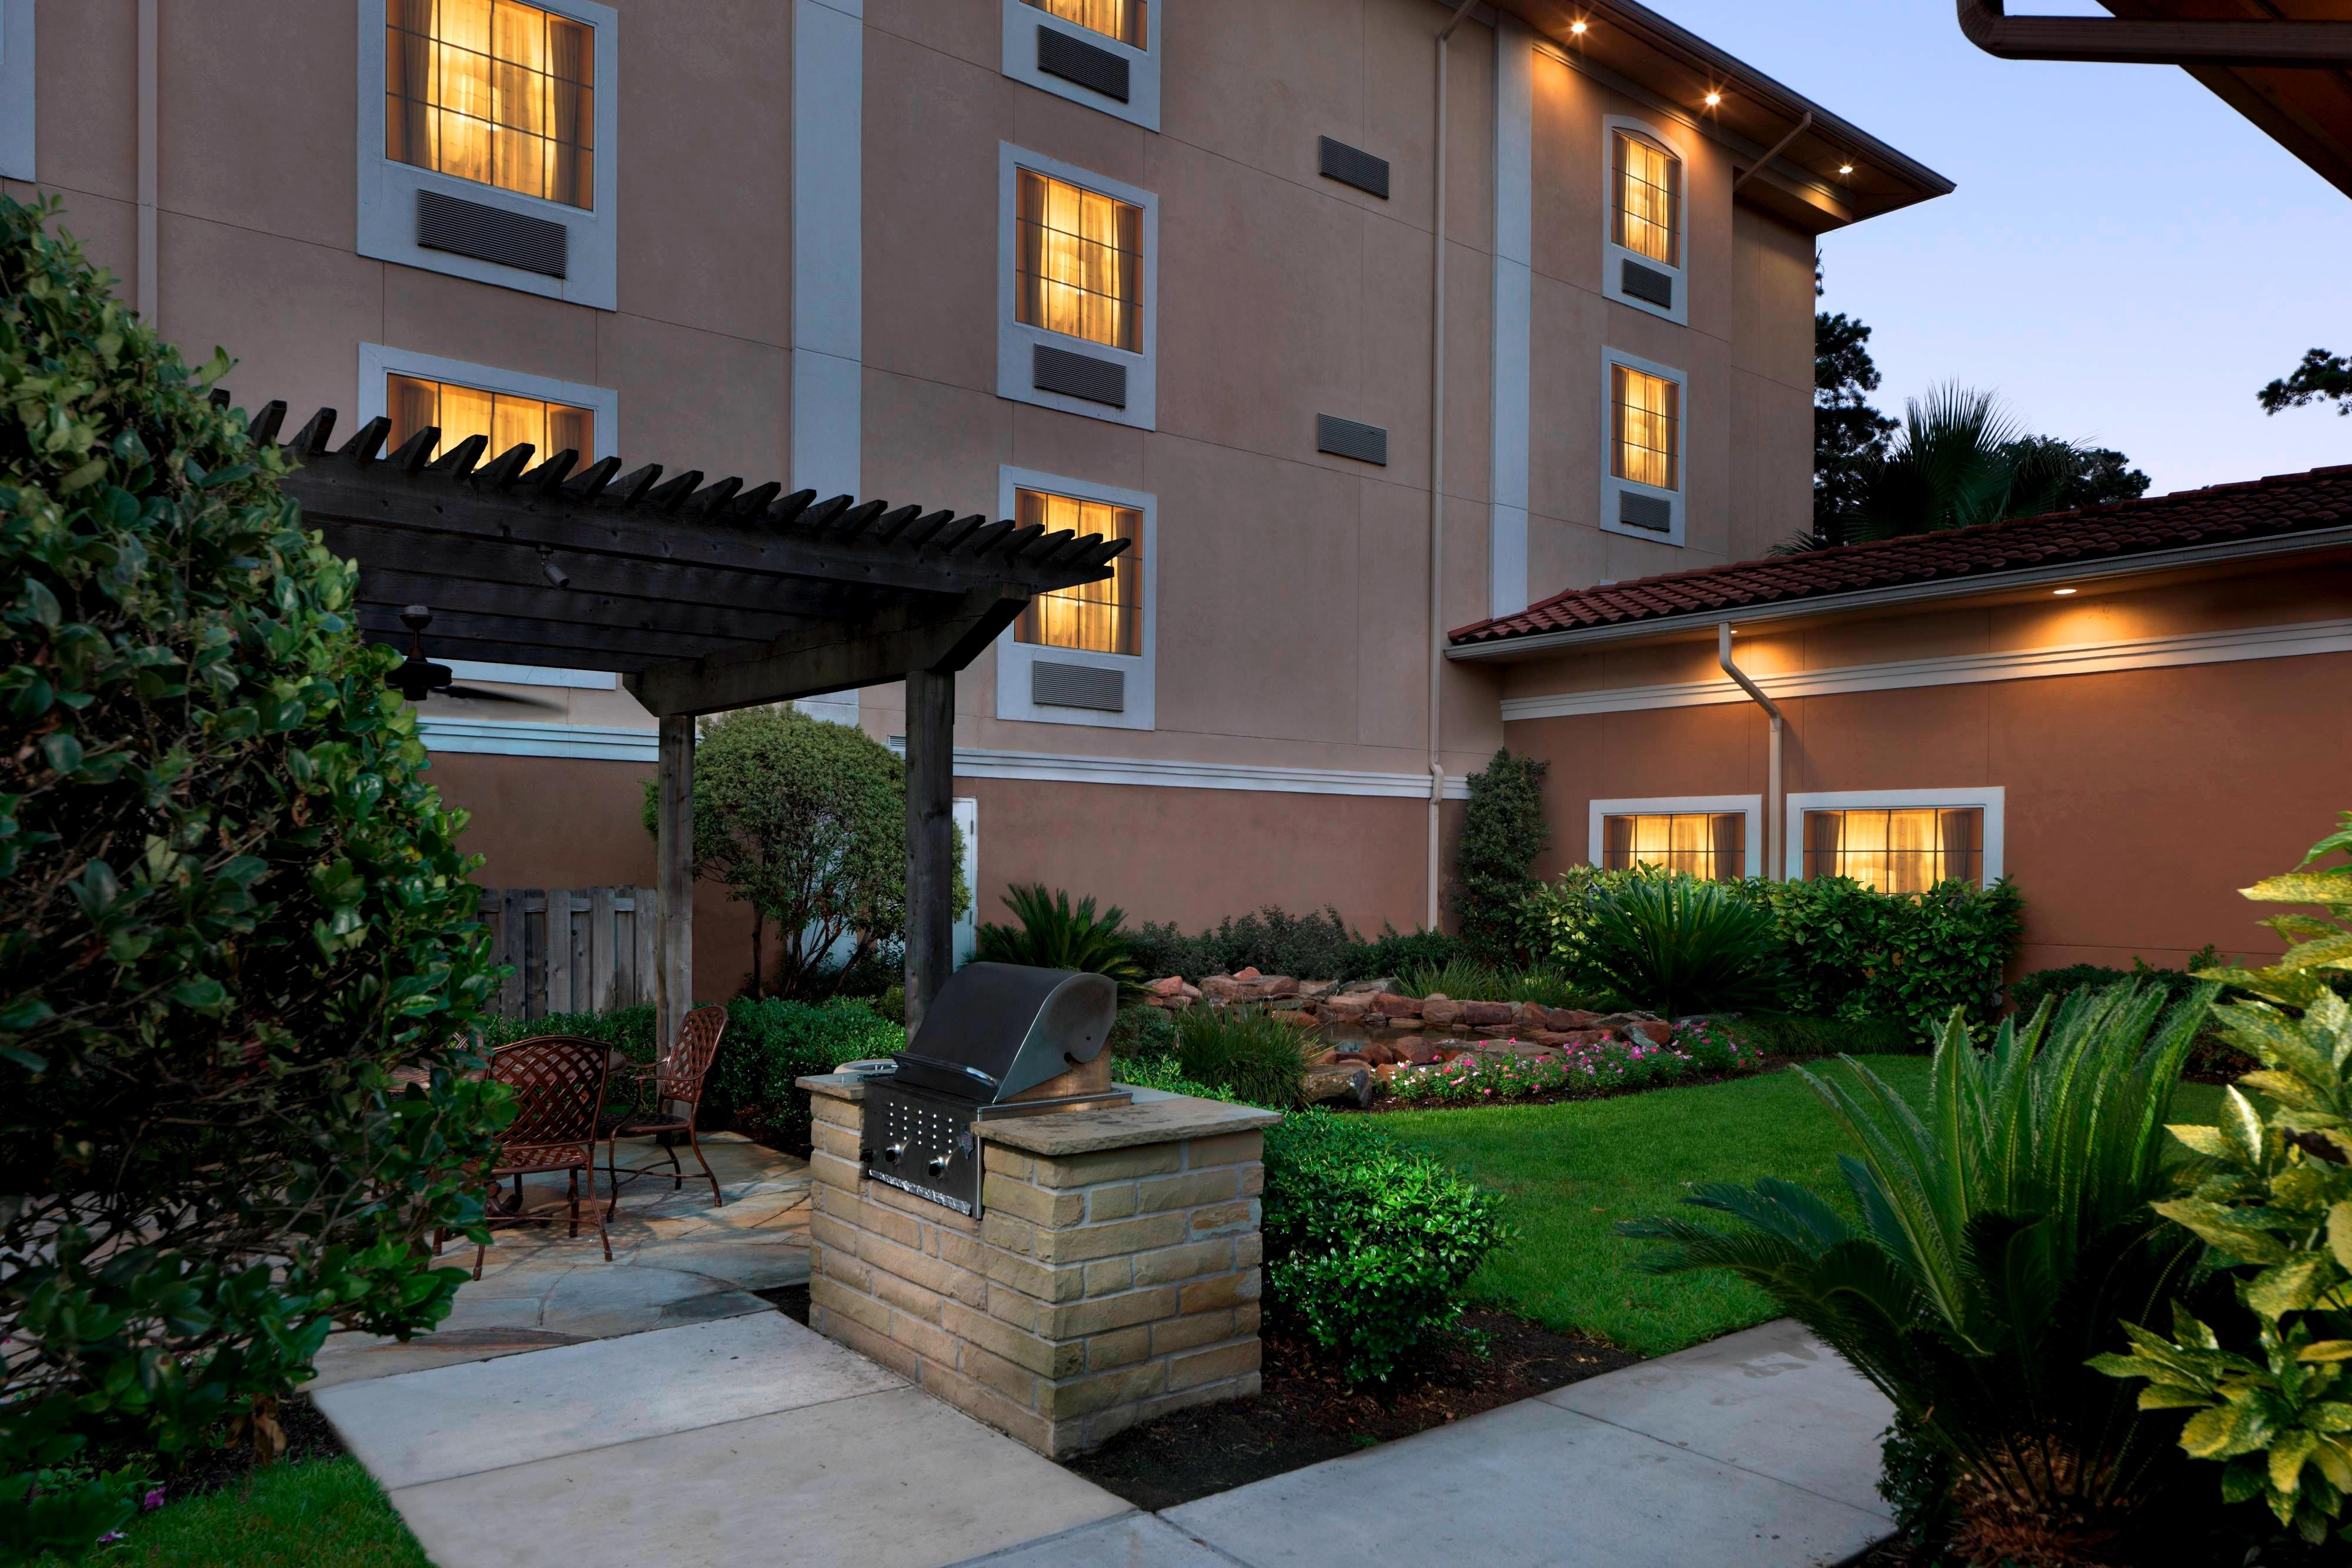 Extended Stay Hotels in Houston TX